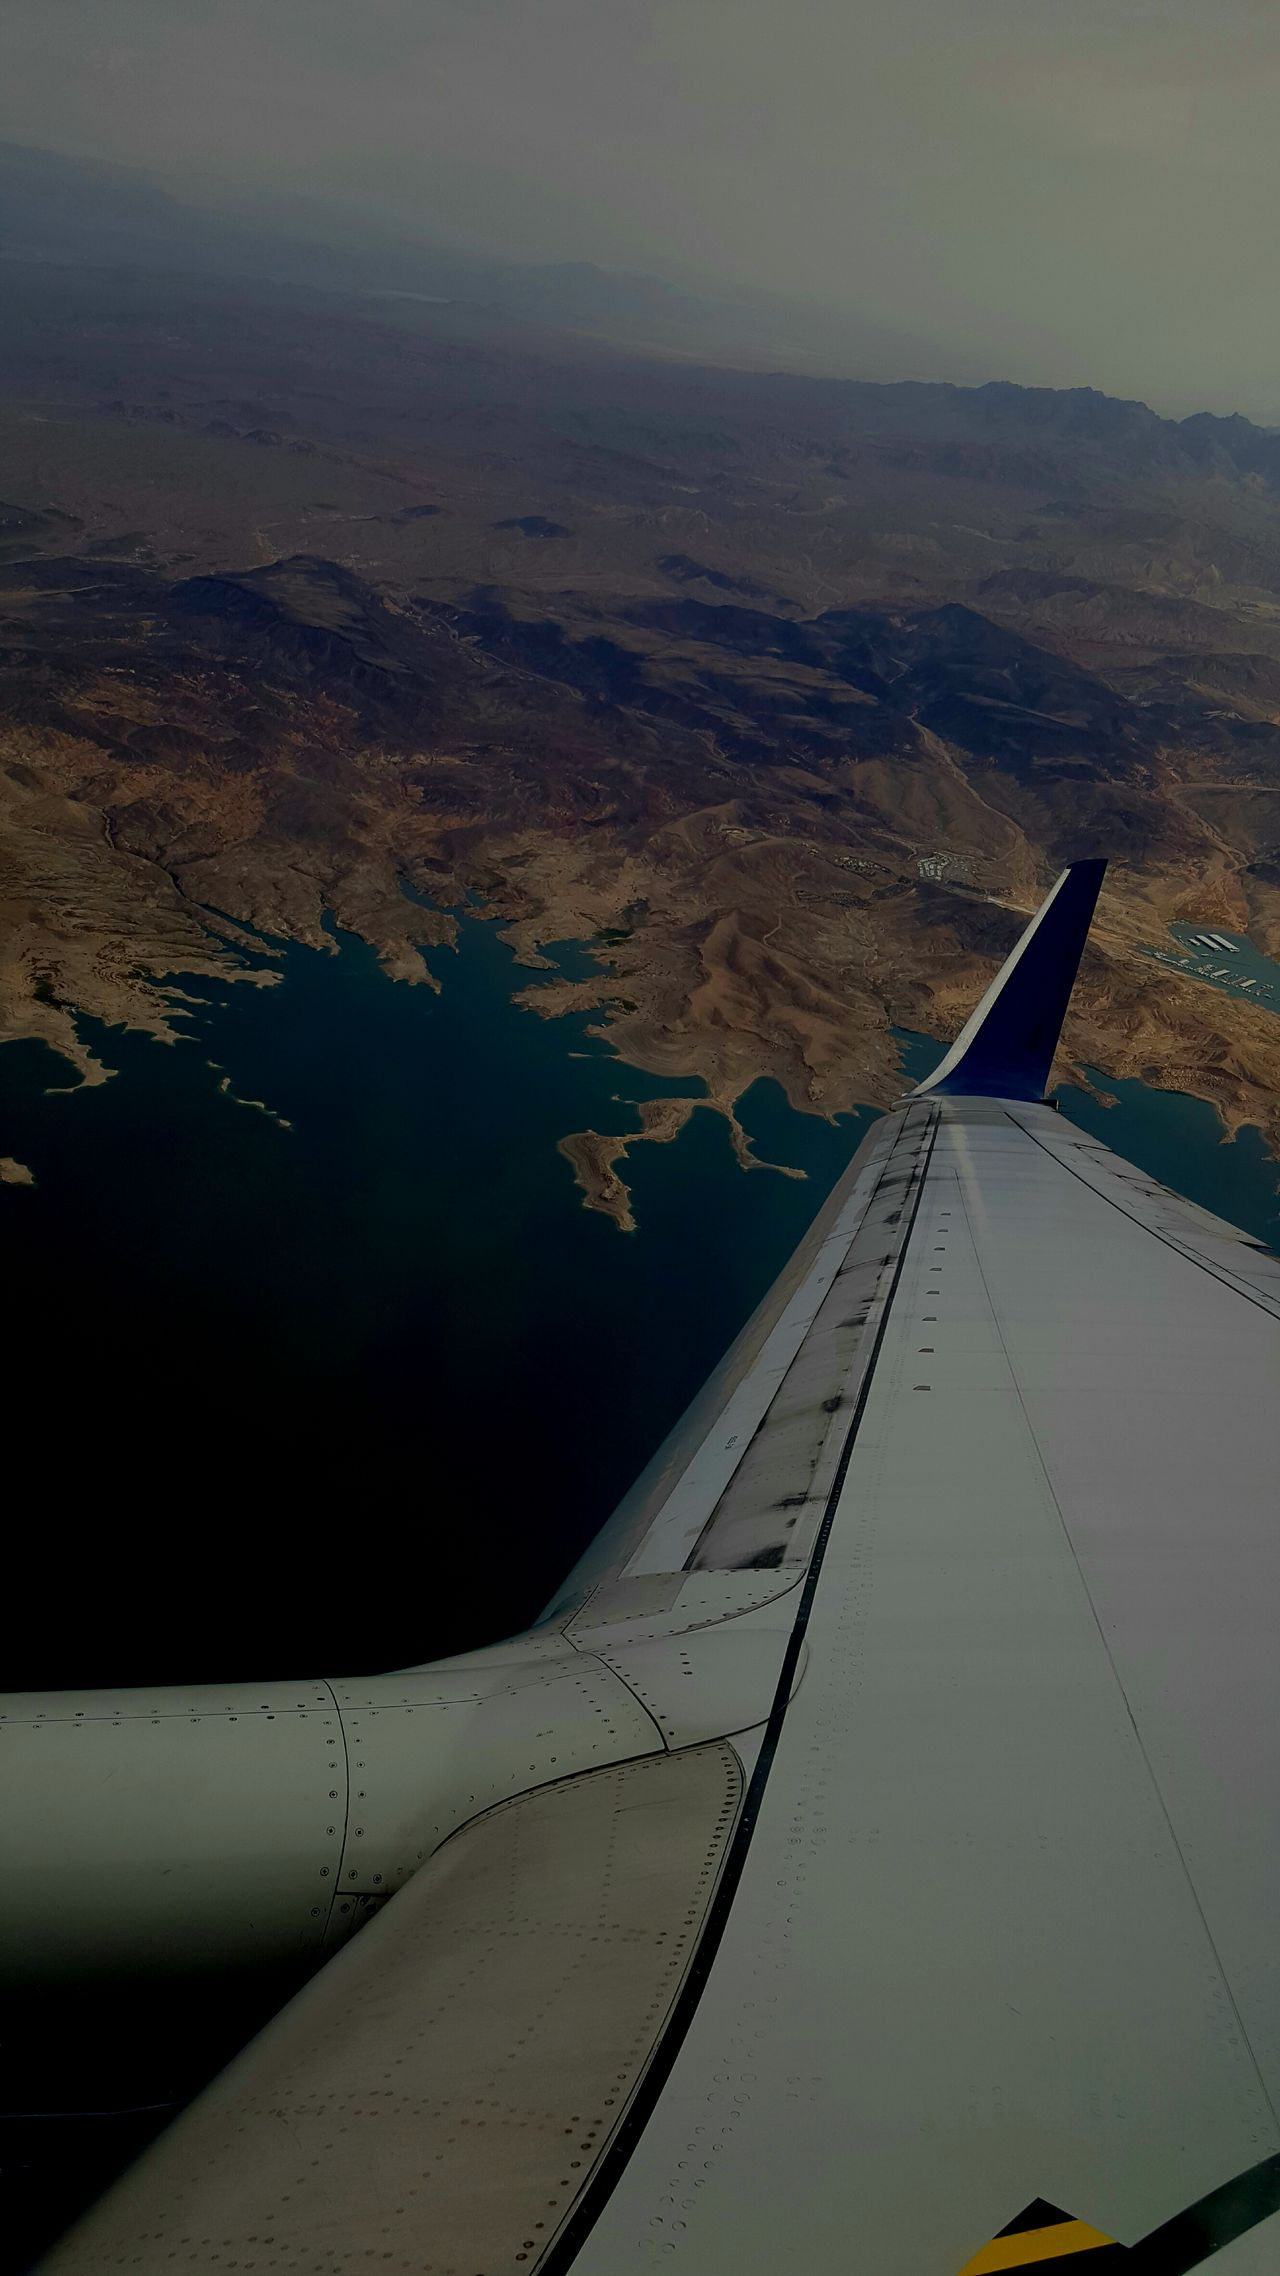 Traveling AirPlane ✈ Water Mountains Airplane Wing Airplane View Delta Airlines Traveling Photography Scenery💋 Water_collection Lake View Lakescape Mountain View Mountainscape Mountains And Valleys ValleyStream Valleys Blue Water